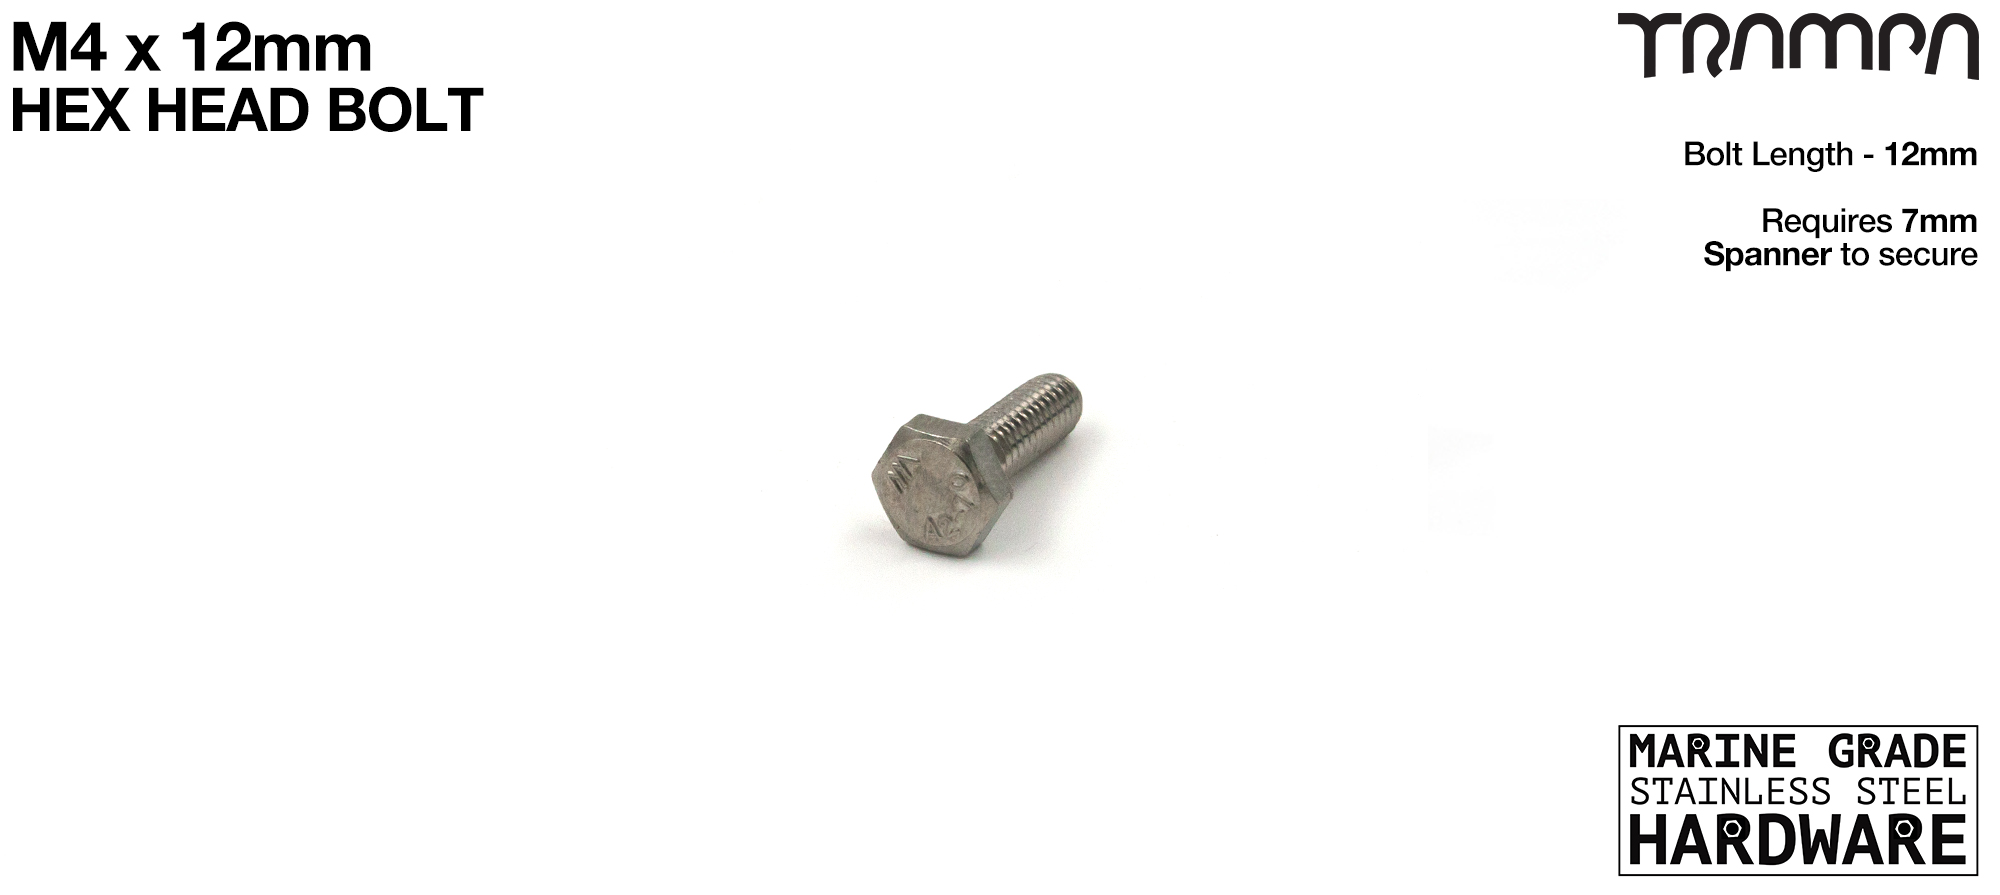 M4x12 HEX Head Bolt Marine Grade Stainless Steel